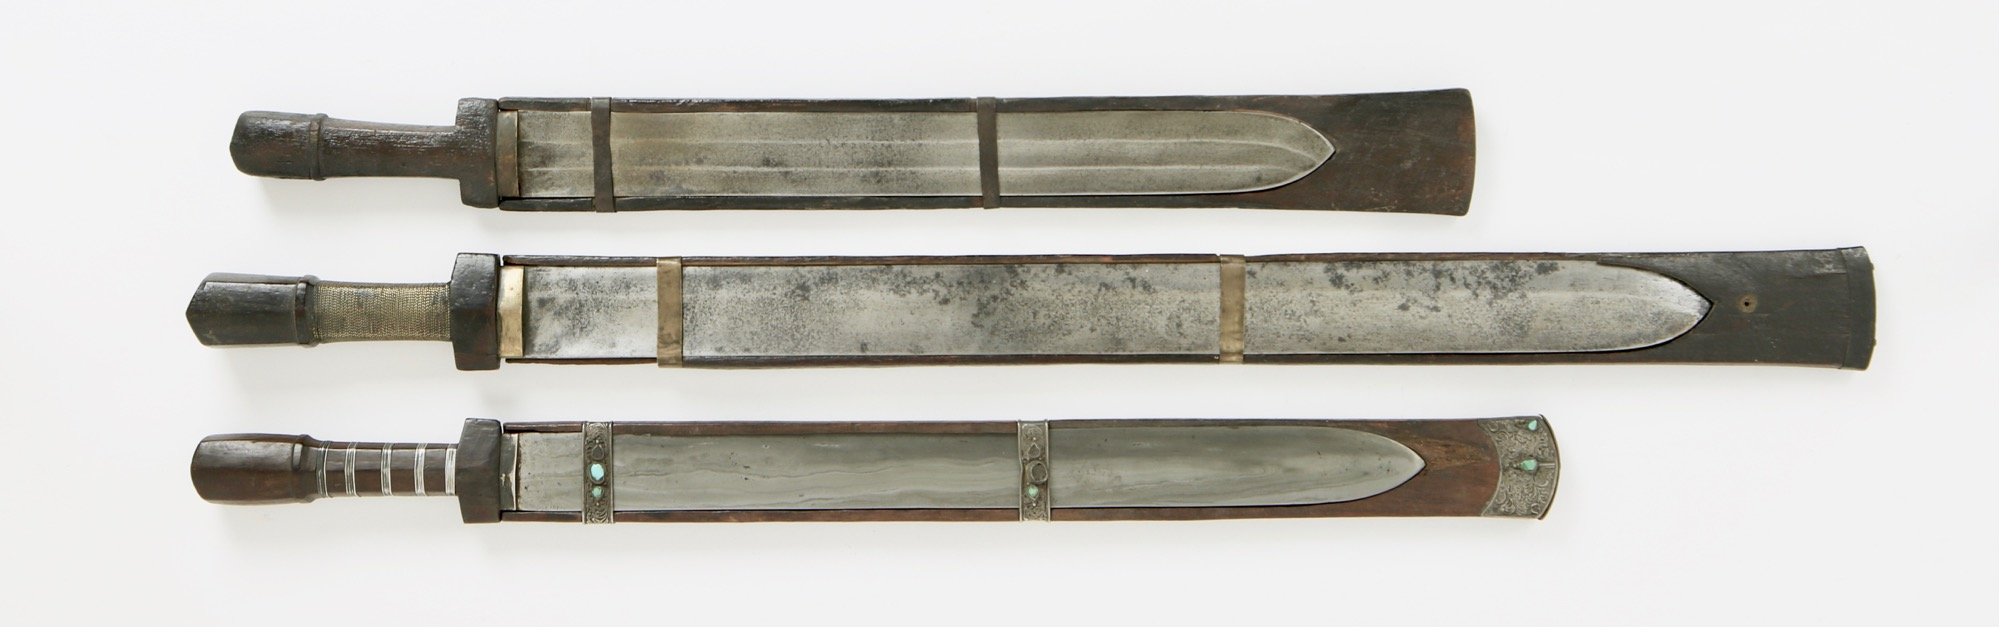 Three antique swords from the Kingdom of Sikkim.